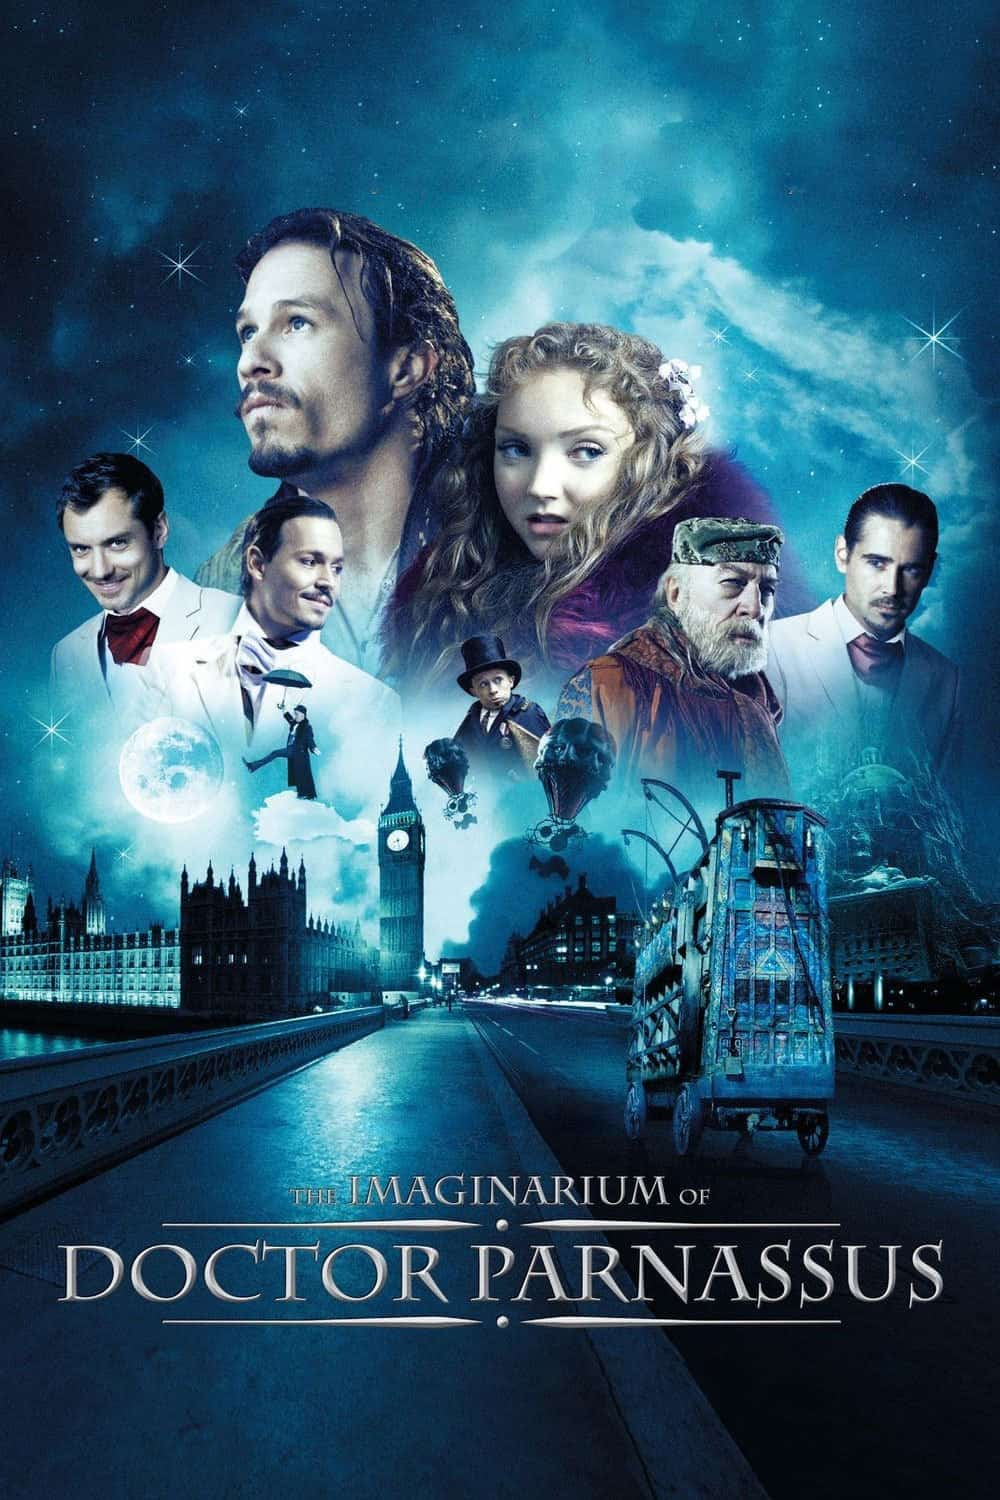 The Imaginarium of Doctor Parnassus, 2009